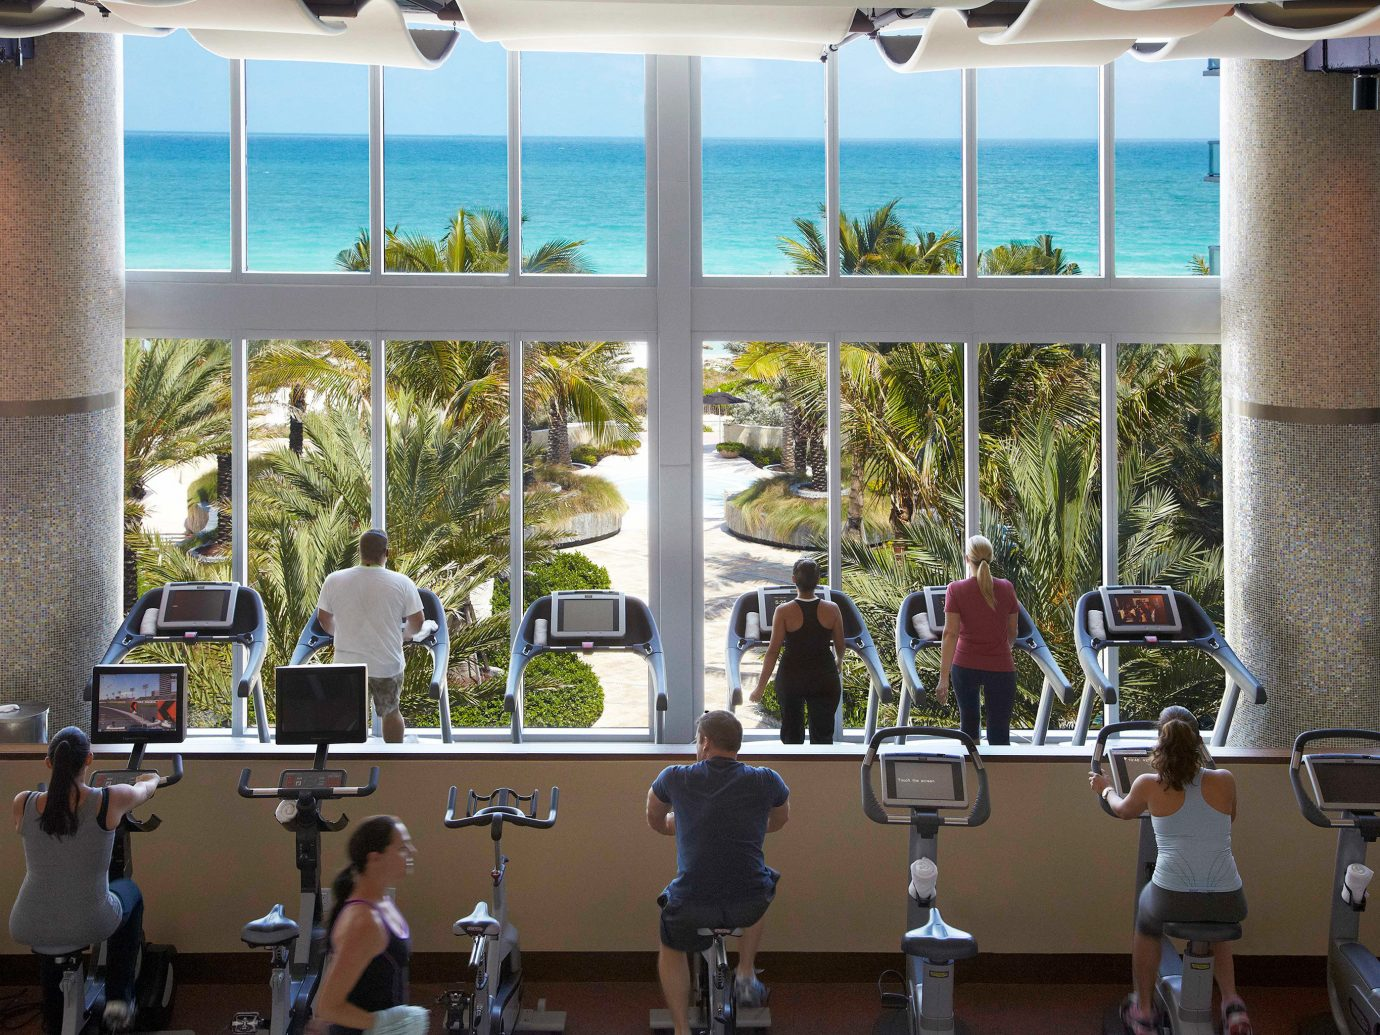 Beachfront Fitness Hotels Scenic views Sport Wellness structure room interior design Resort restaurant window covering several